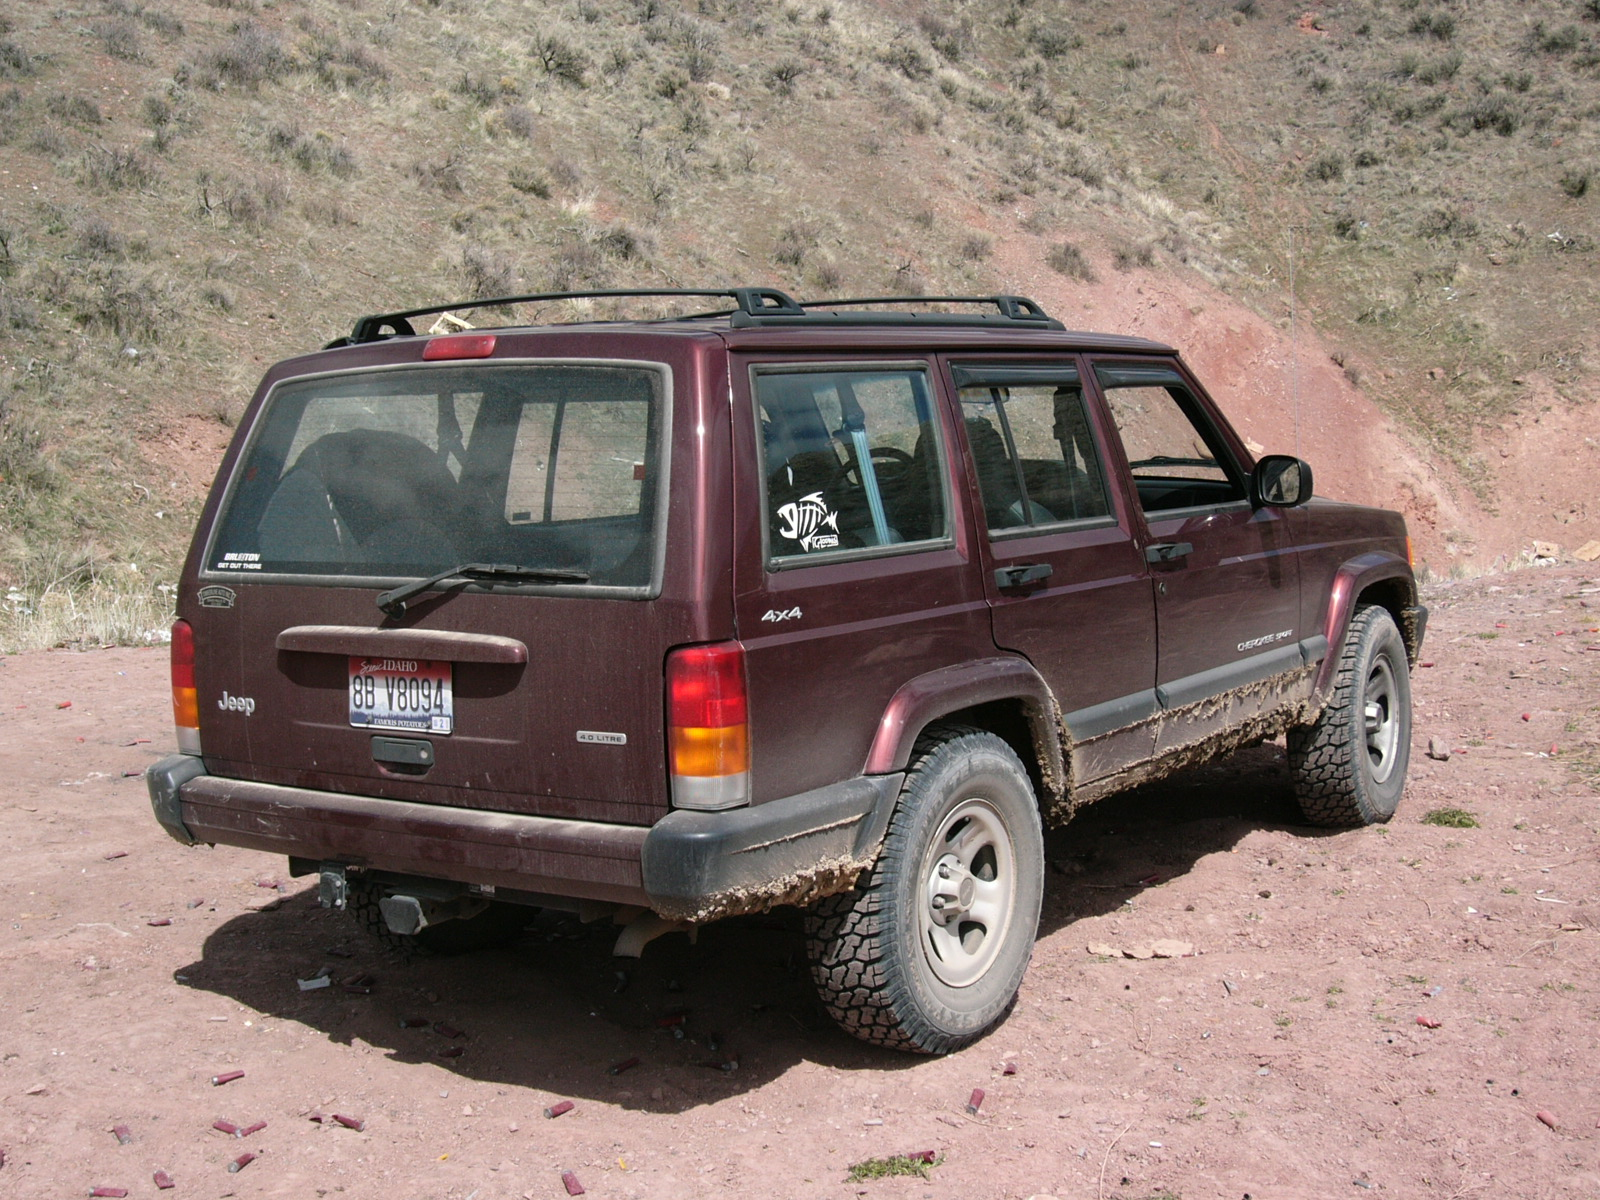 2001 jeep cherokee sport 4wd picture. Cars Review. Best American Auto & Cars Review